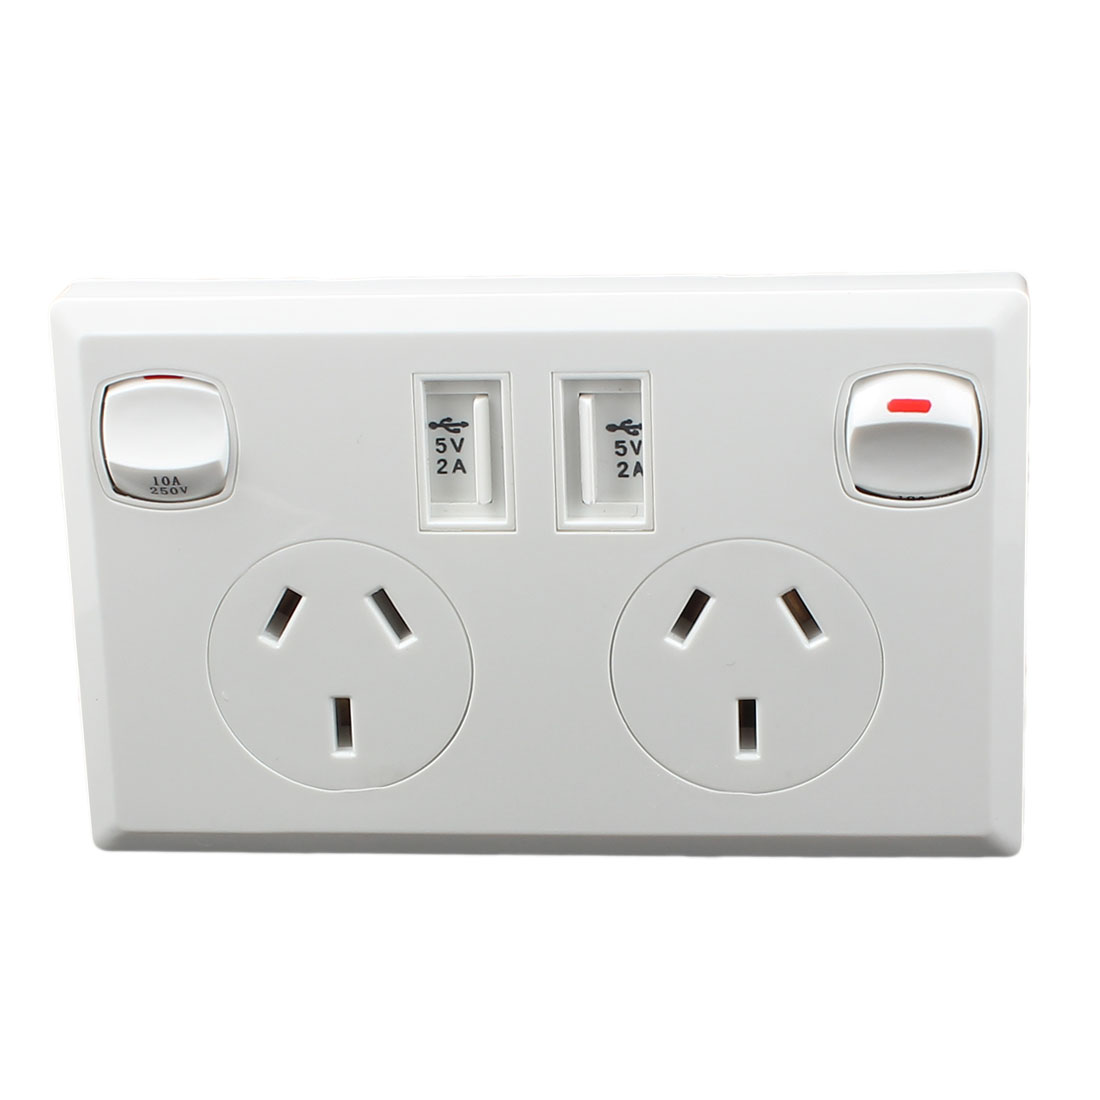 Dual AC 90V-250V AU Socket 2 USB Port Charging DC 5V 2100mA Mains Power Switch Wall Outlet